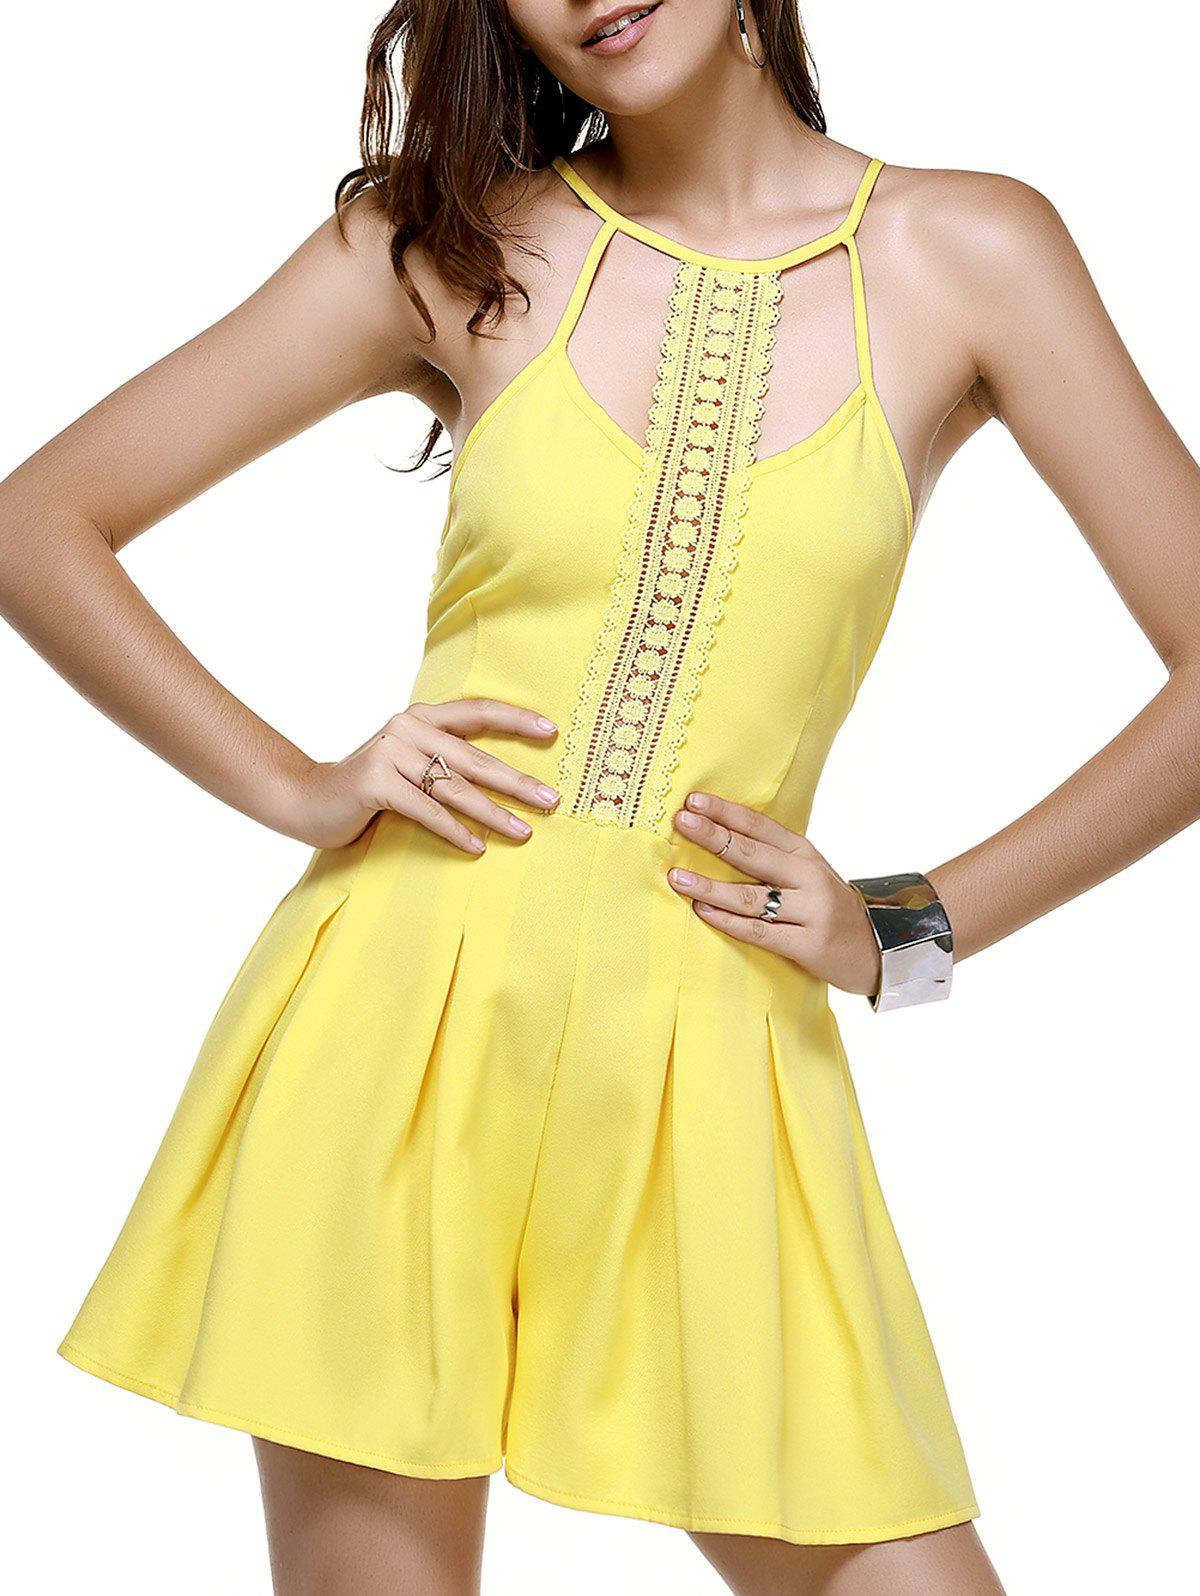 Trendy Lace Spliced Hollow Out Yellow Romper For Women - YELLOW XL